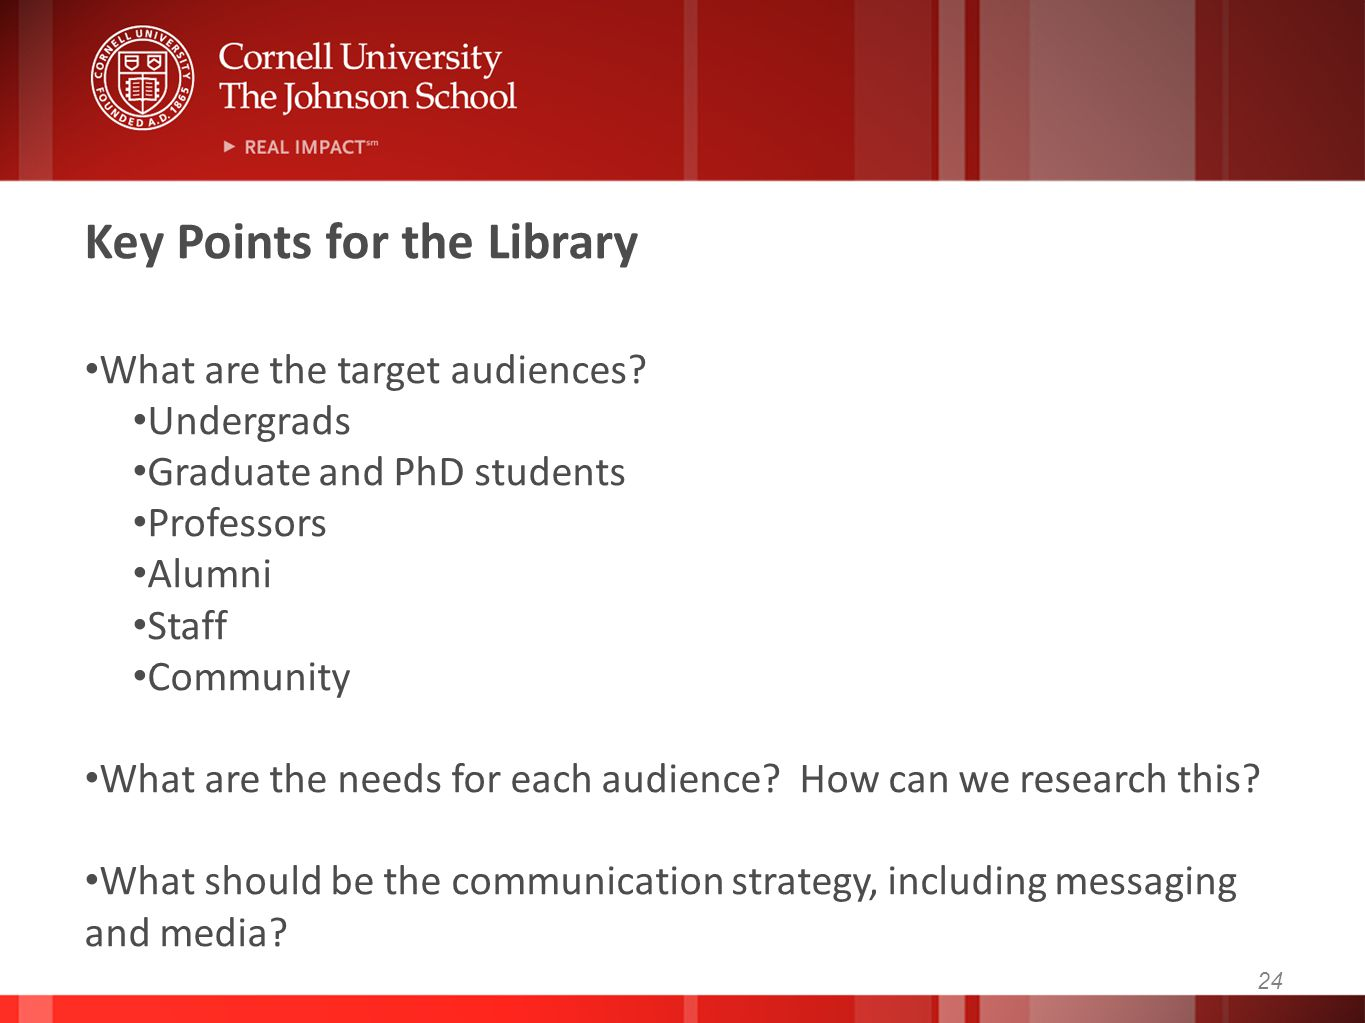 24 Key Points for the Library What are the target audiences? Undergrads Graduate and PhD students Professors Alumni Staff Community What are the needs